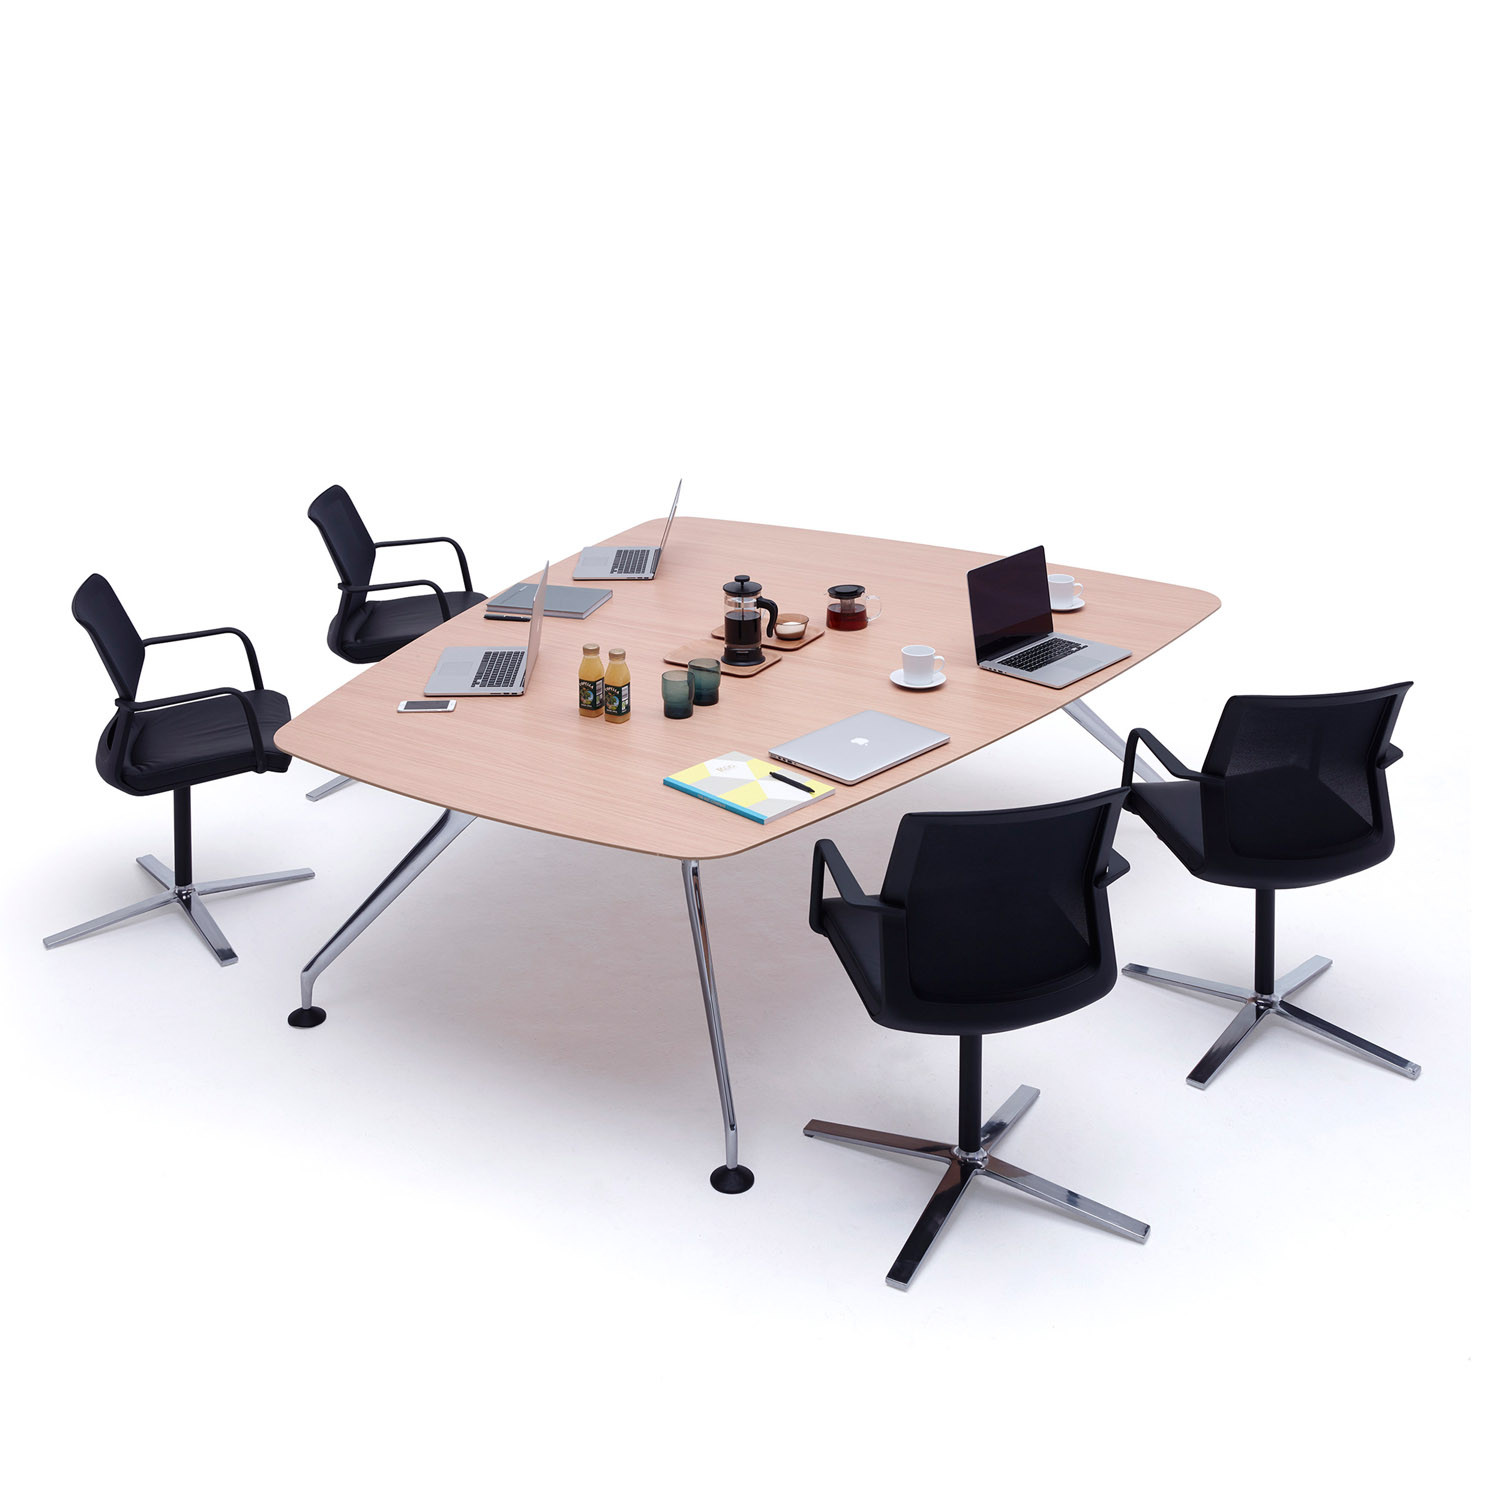 Lano Tables for office meetings